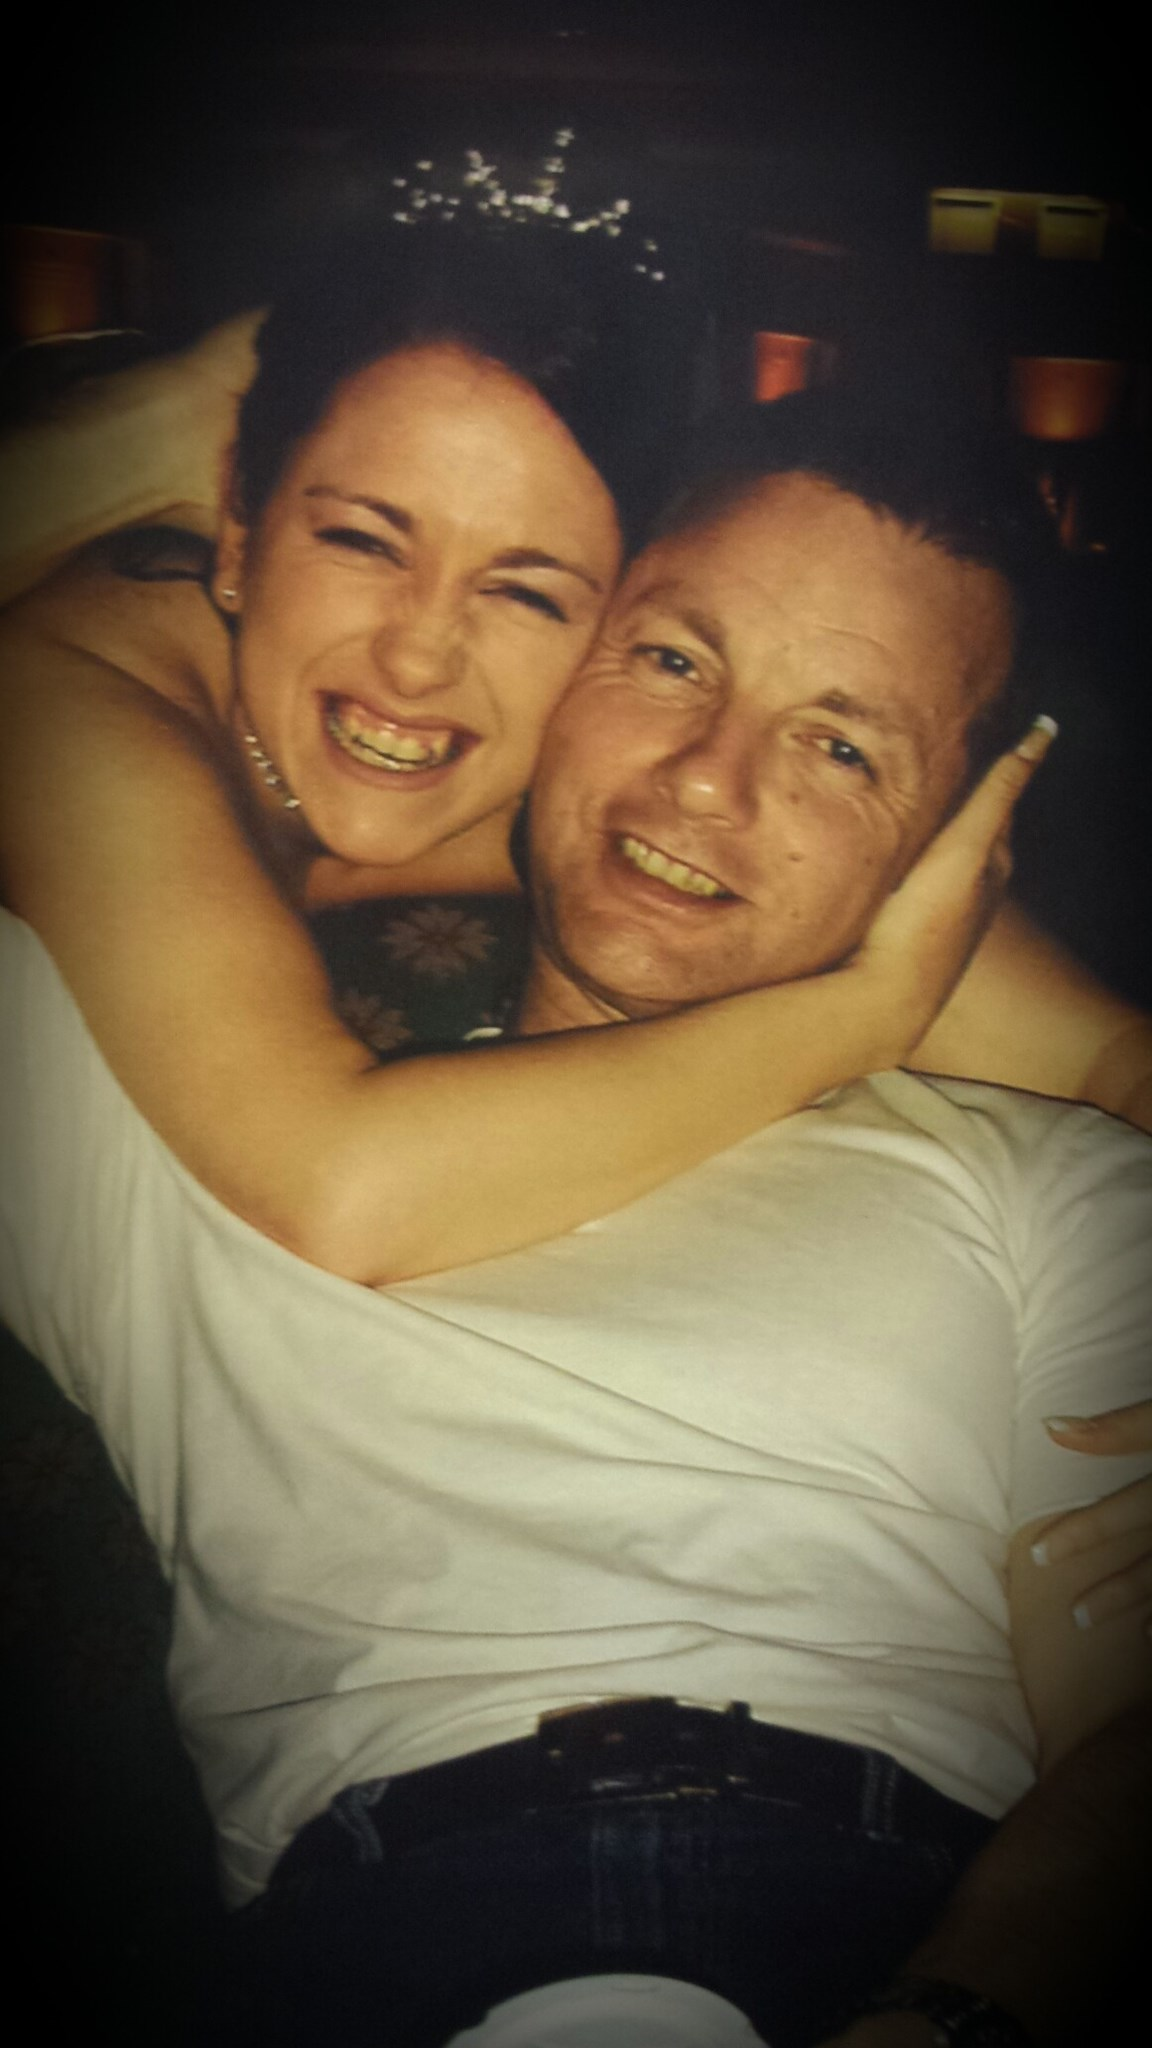 rich and me on my wedding day 20.03.2005 the very moment I found out he was going to be a dad xx